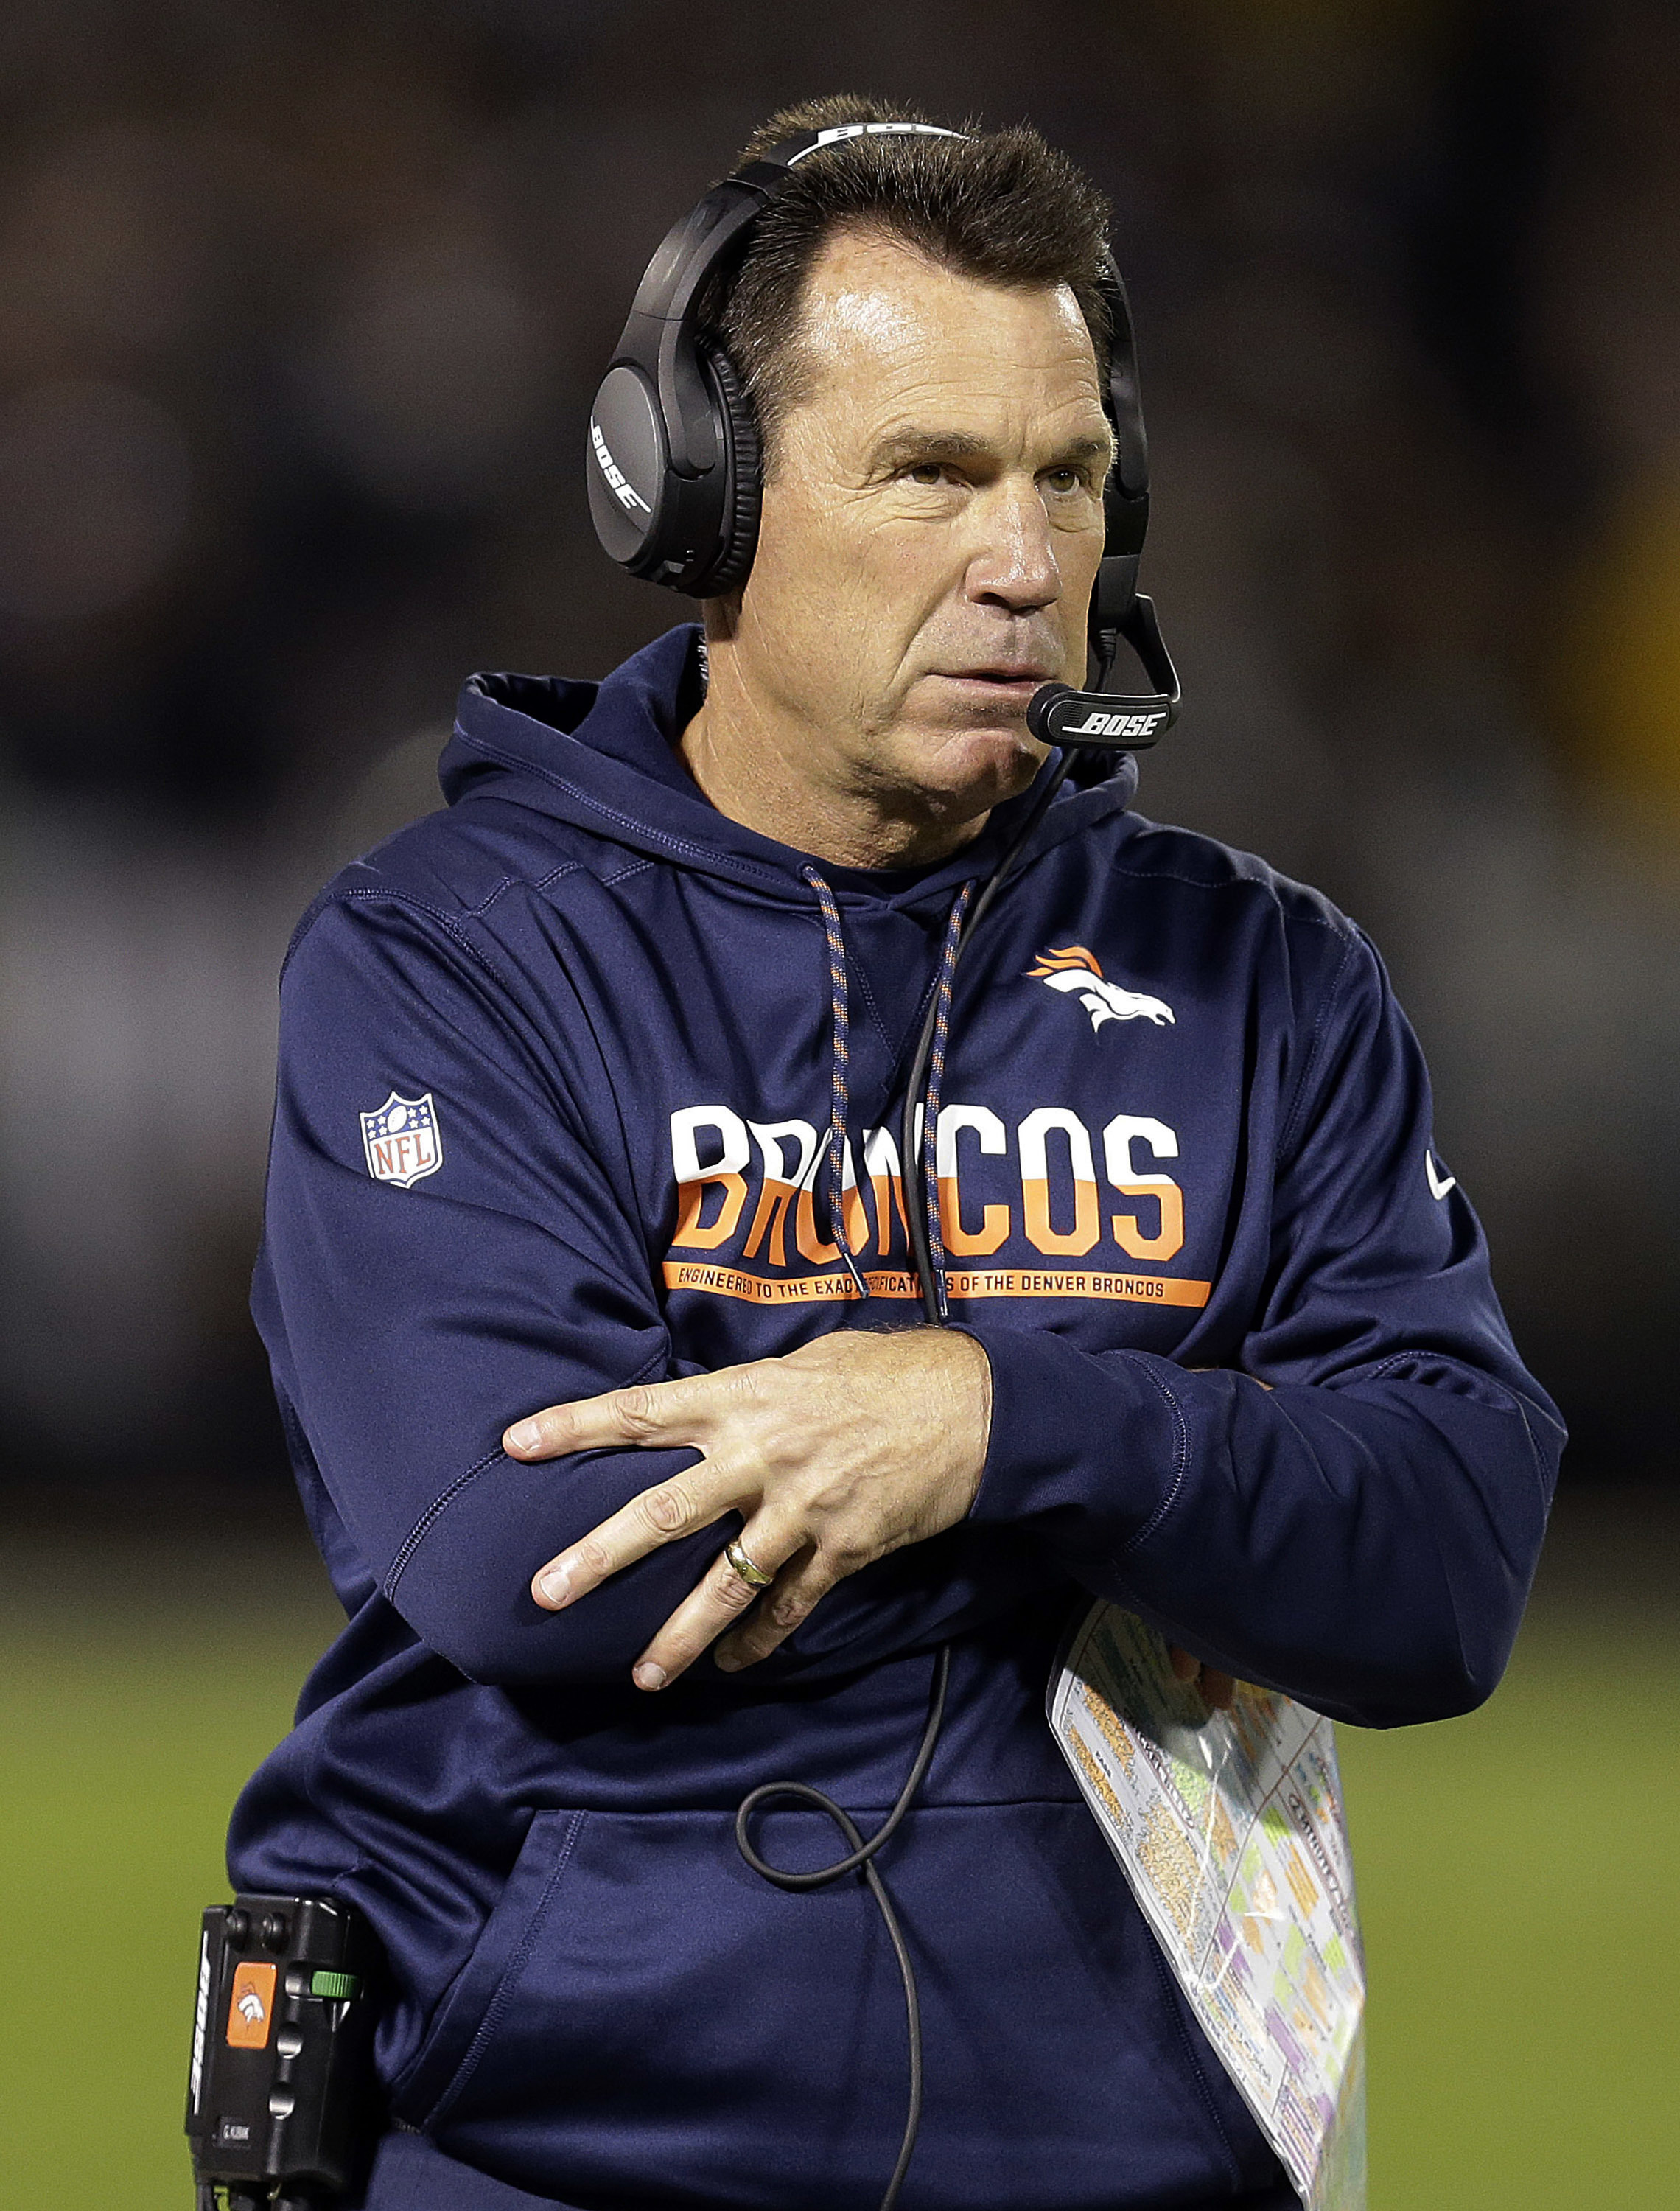 Denver Broncos head coach Gary Kubiak watches from the sideline during the first half of an NFL football game against the Oakland Raiders in Oakland, Calif., Sunday, Nov. 6, 2016. (AP Photo/Ben Margot)